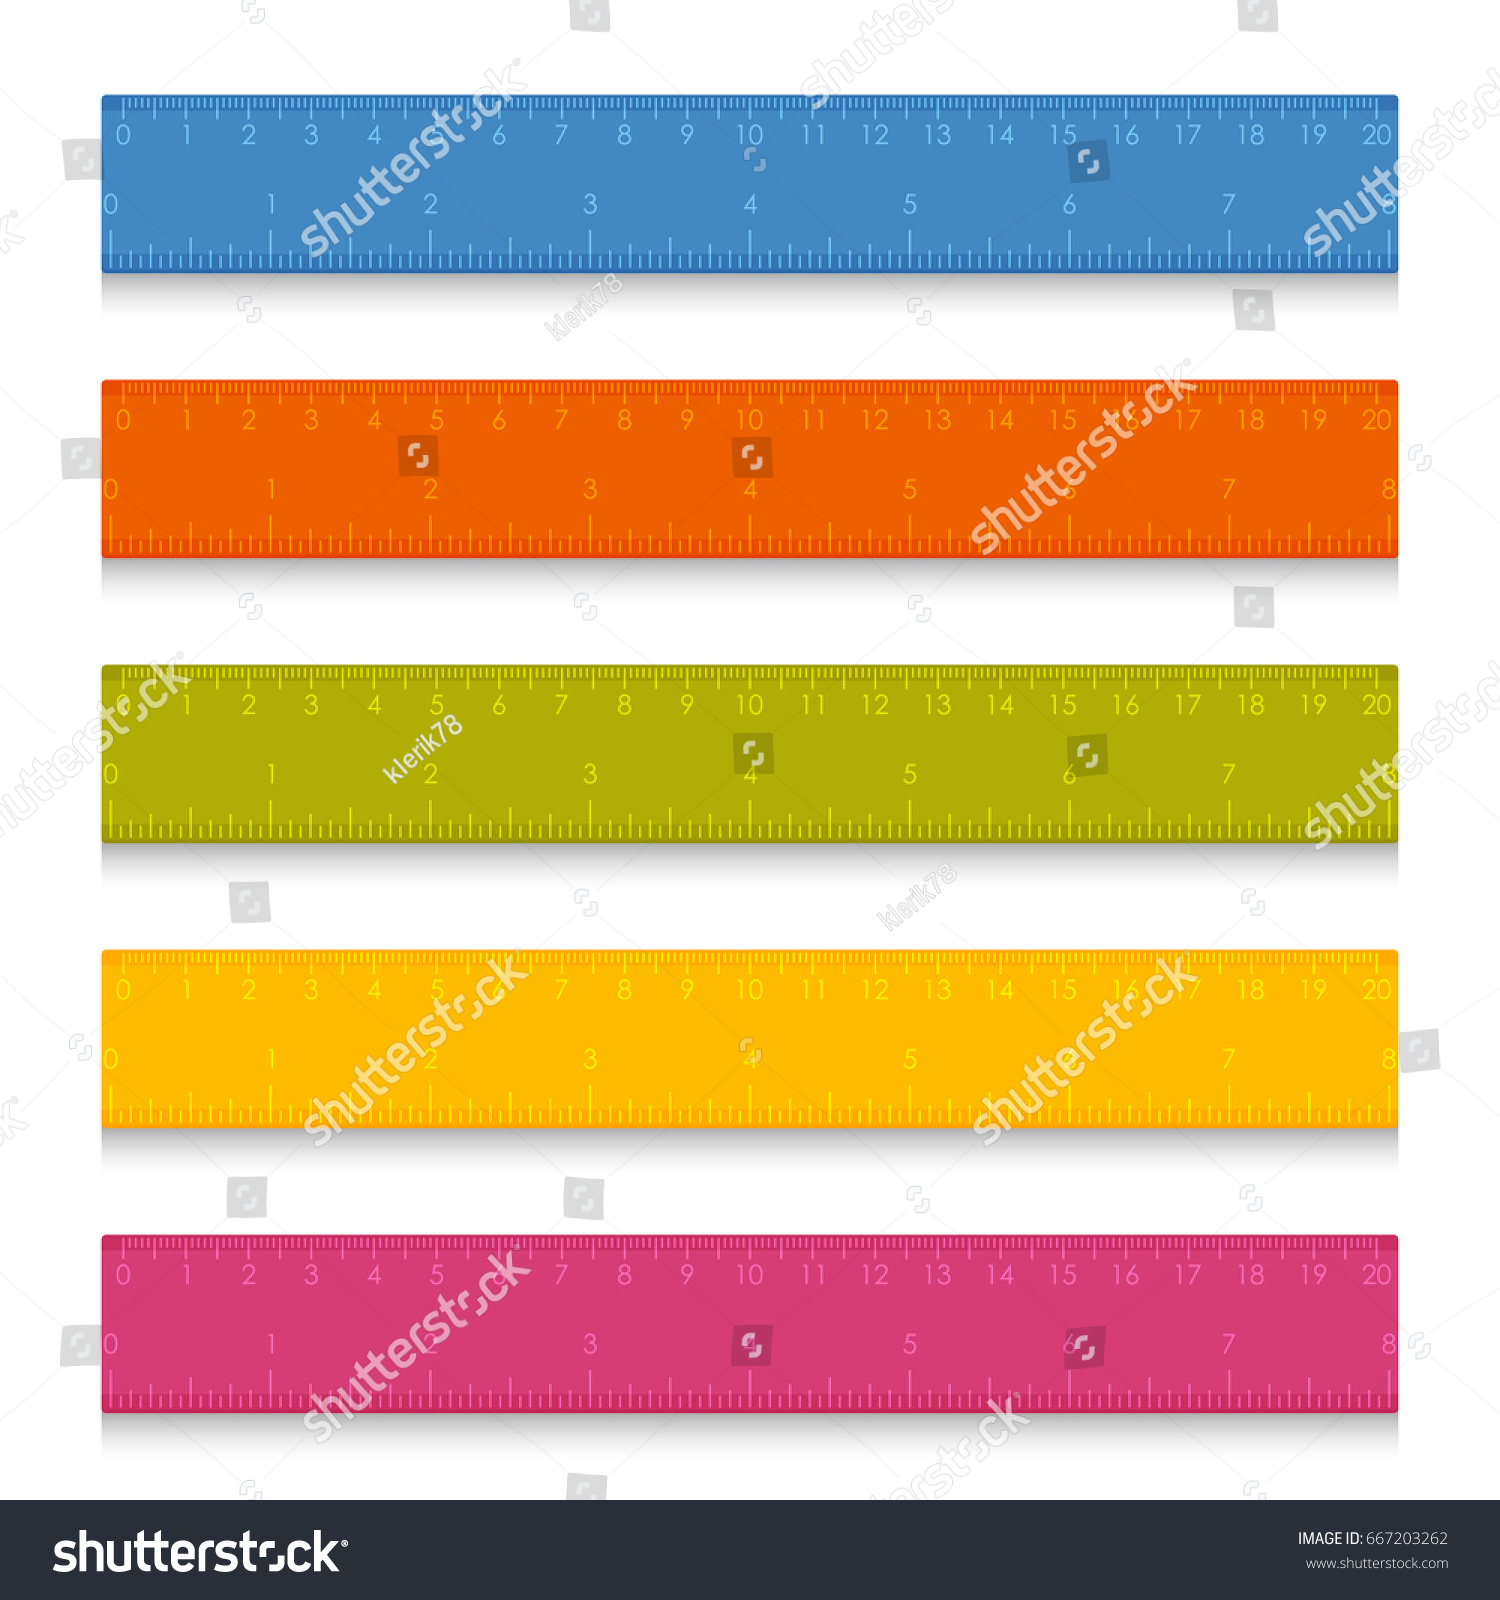 worksheet Measuring With Centimeters set multicolored school measuring rulers centimeters stock vector of with and inches illustration